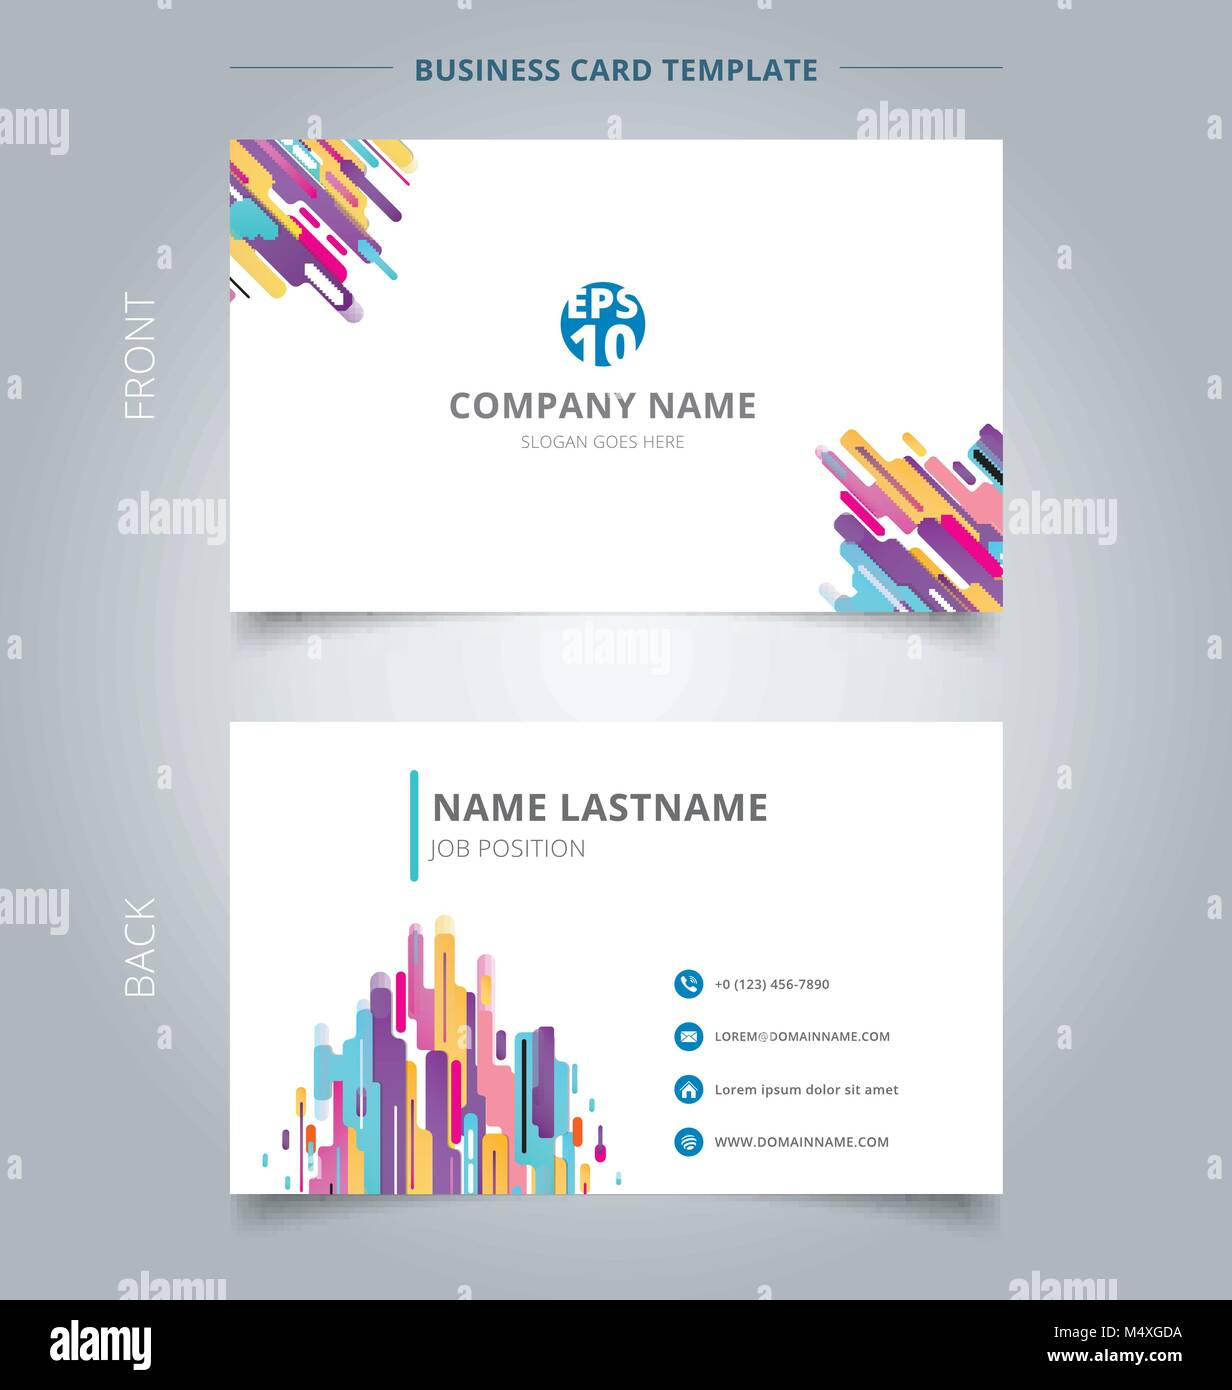 Creative business card and name card template modern style stock creative business card and name card template modern style composition made of various rounded shapes colorful abstract concept and commercial design wajeb Gallery